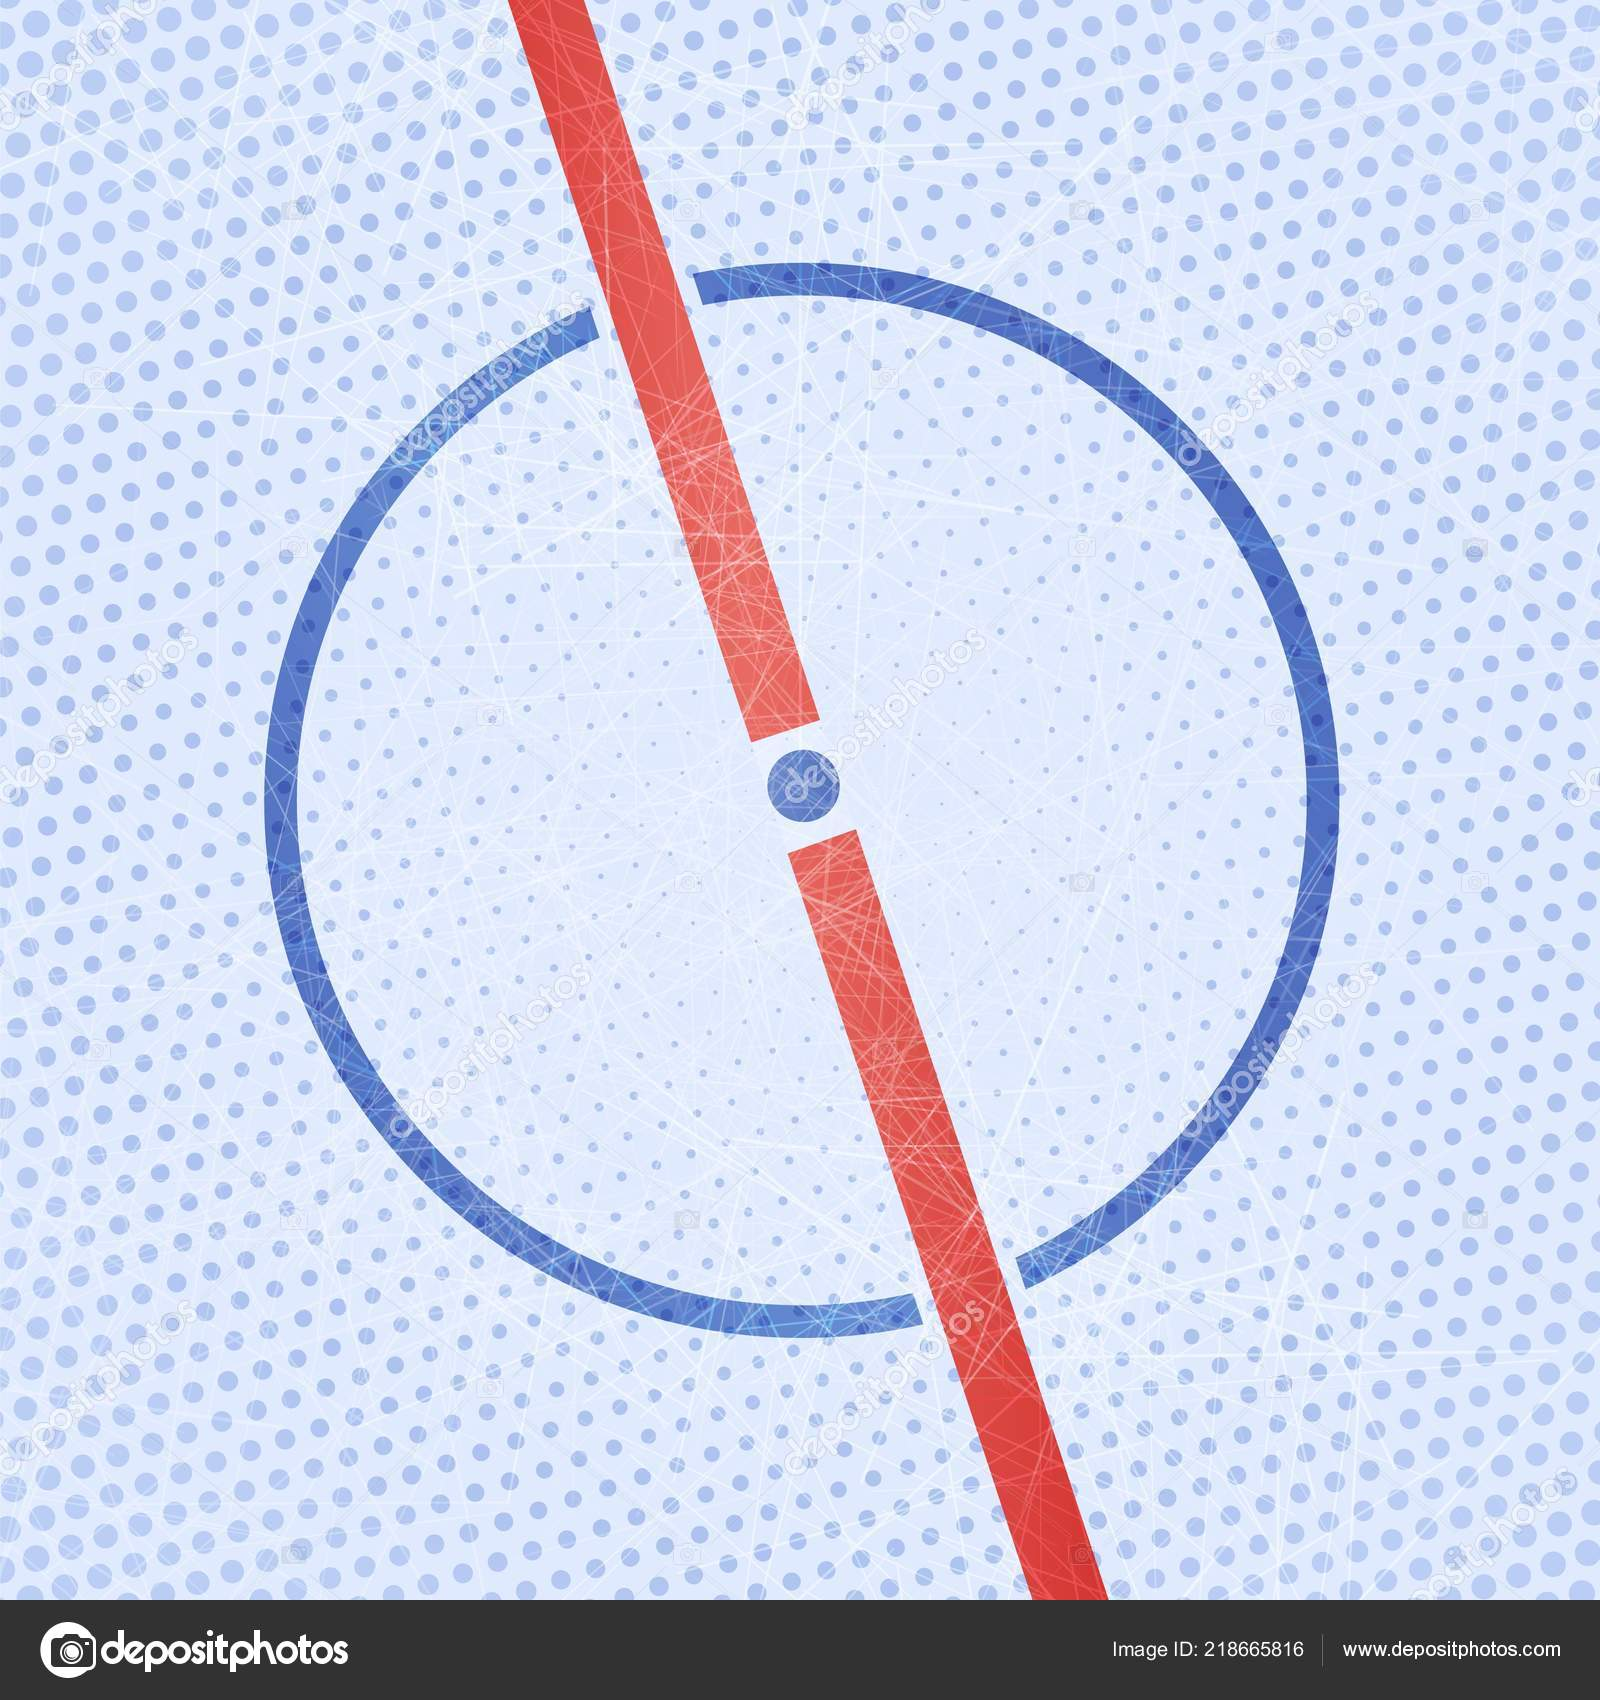 hockey ice rink cartoon and halftone background vector illustration